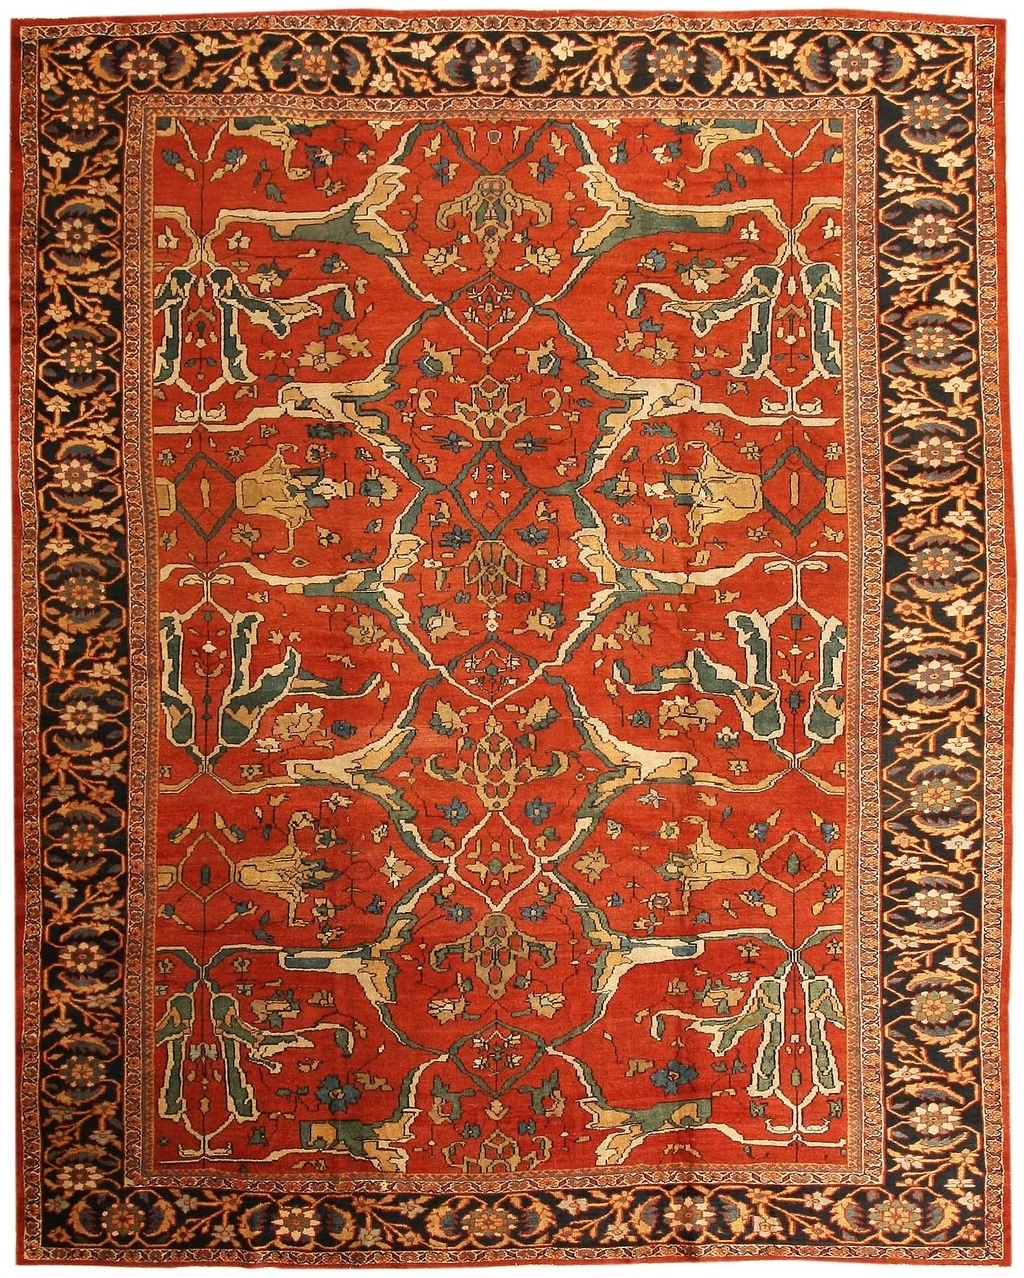 Oriental Rug Sample (Image 15 of 24)